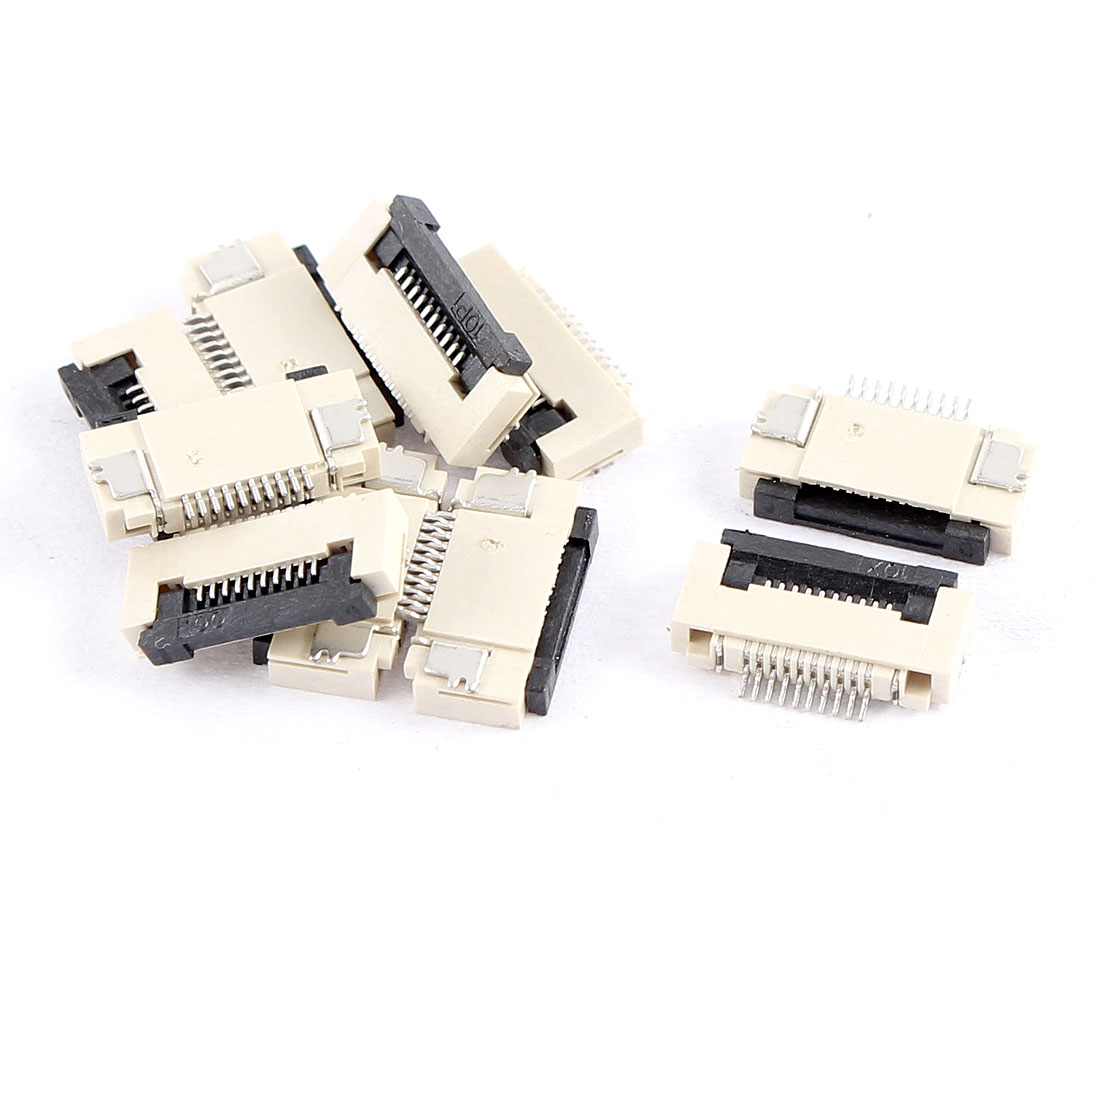 10Pcs Clamshell Type Bottom Port 10Pin 0.5mm Pitch FFC FPC Sockets Connector